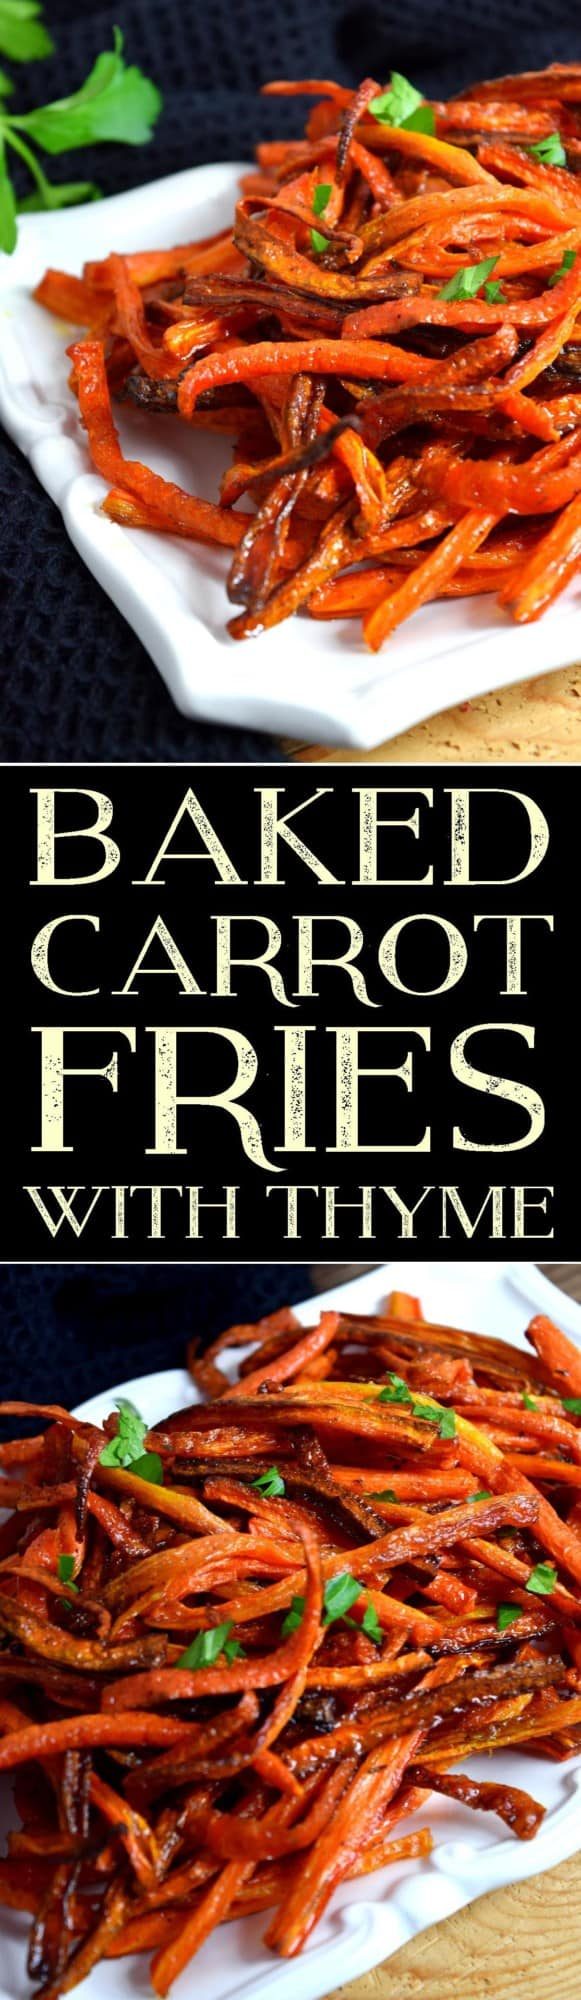 Baked Carrot Fries with Thyme